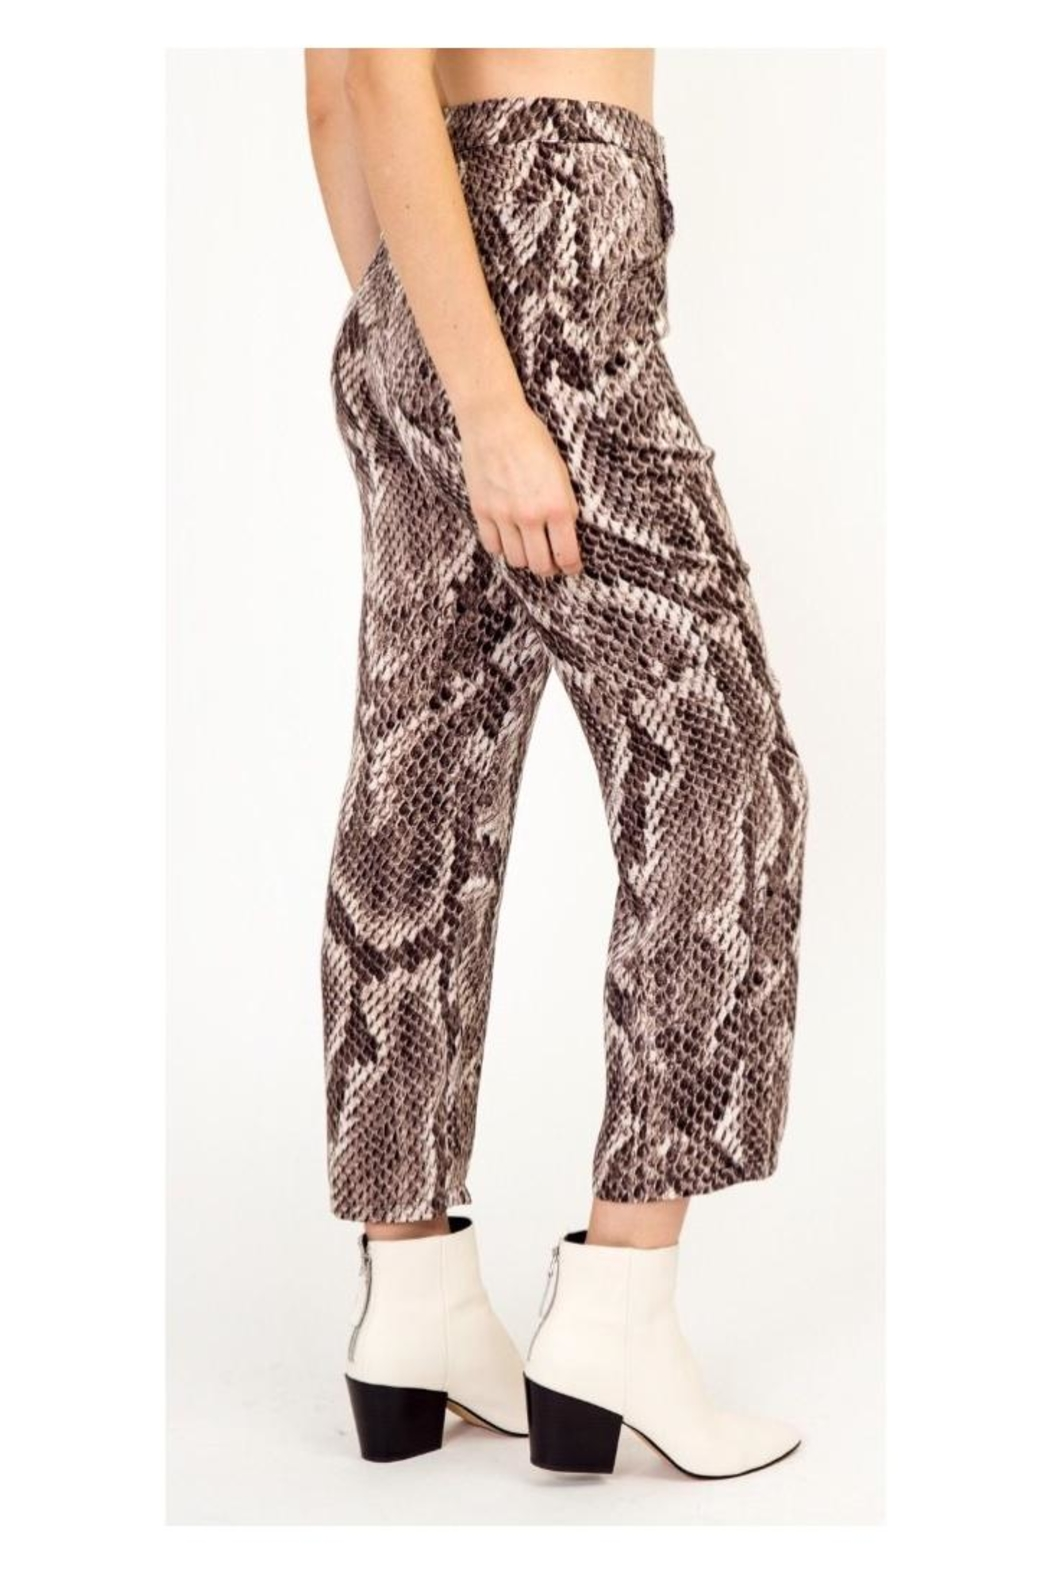 Polly & Esther Snake Print Pants - Front Full Image